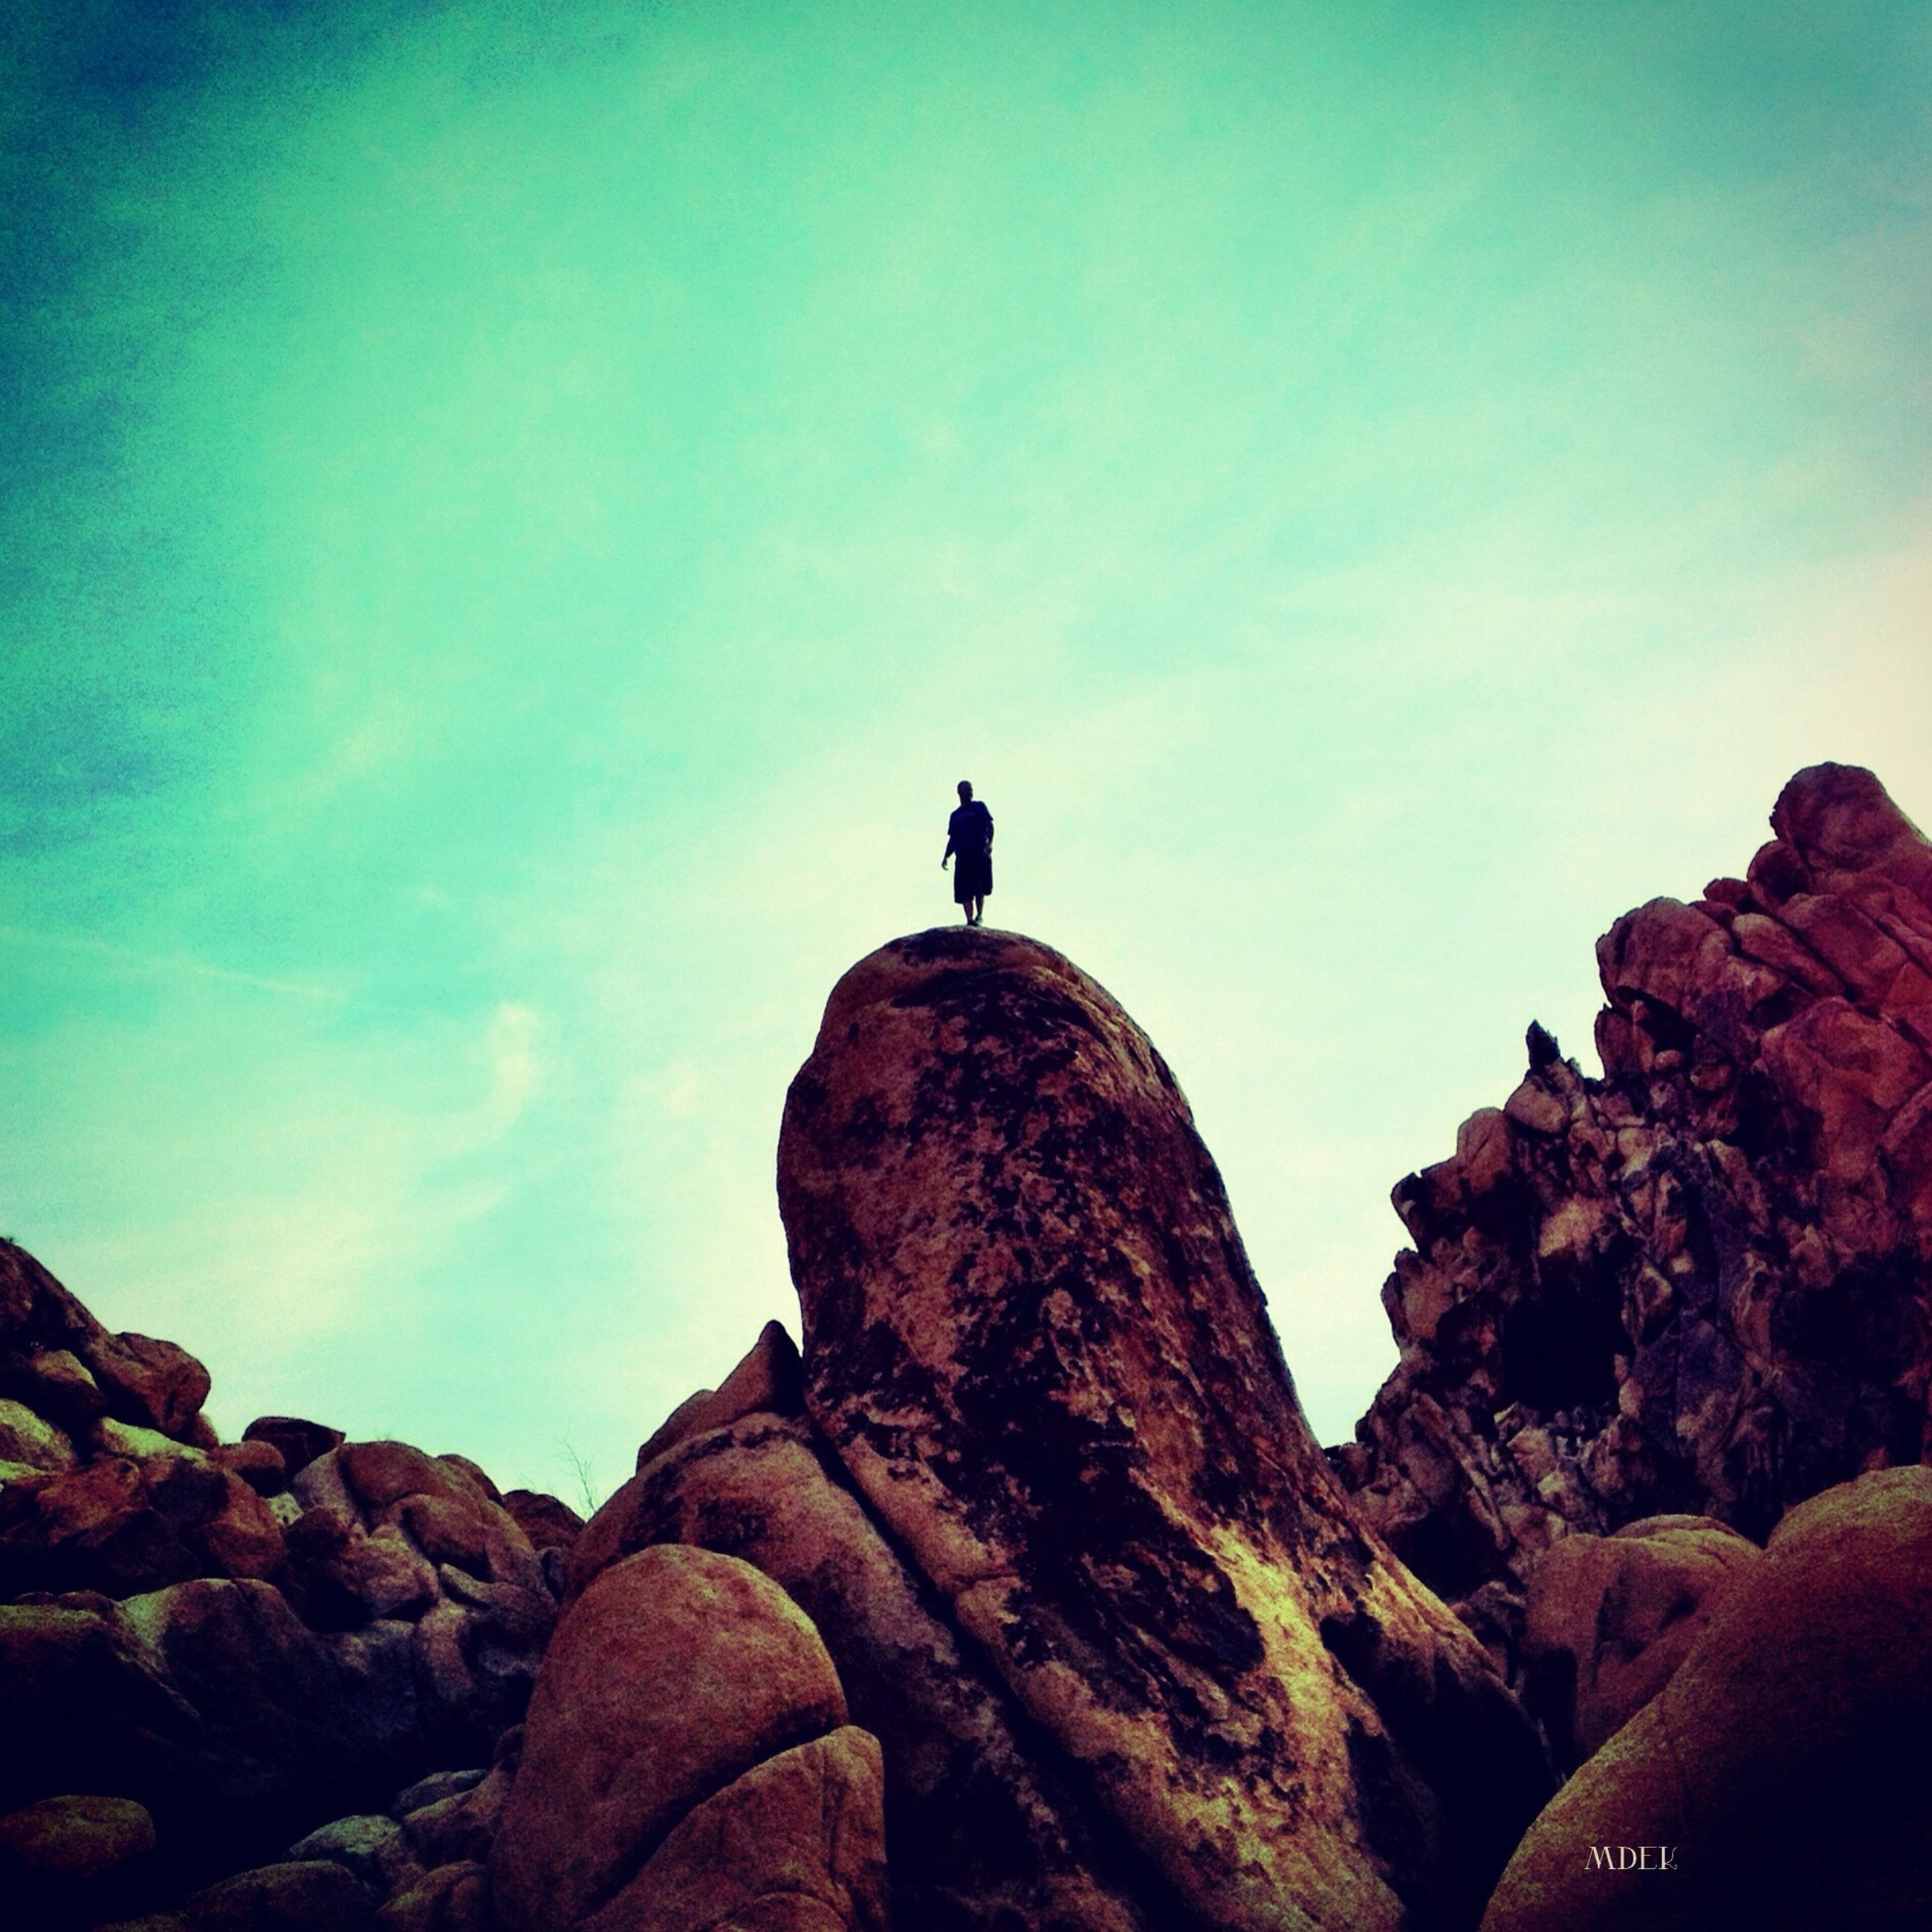 rock - object, sky, low angle view, bird, silhouette, one animal, tranquility, nature, rock, rock formation, beauty in nature, full length, tranquil scene, scenics, animal themes, copy space, blue, wildlife, animals in the wild, clear sky